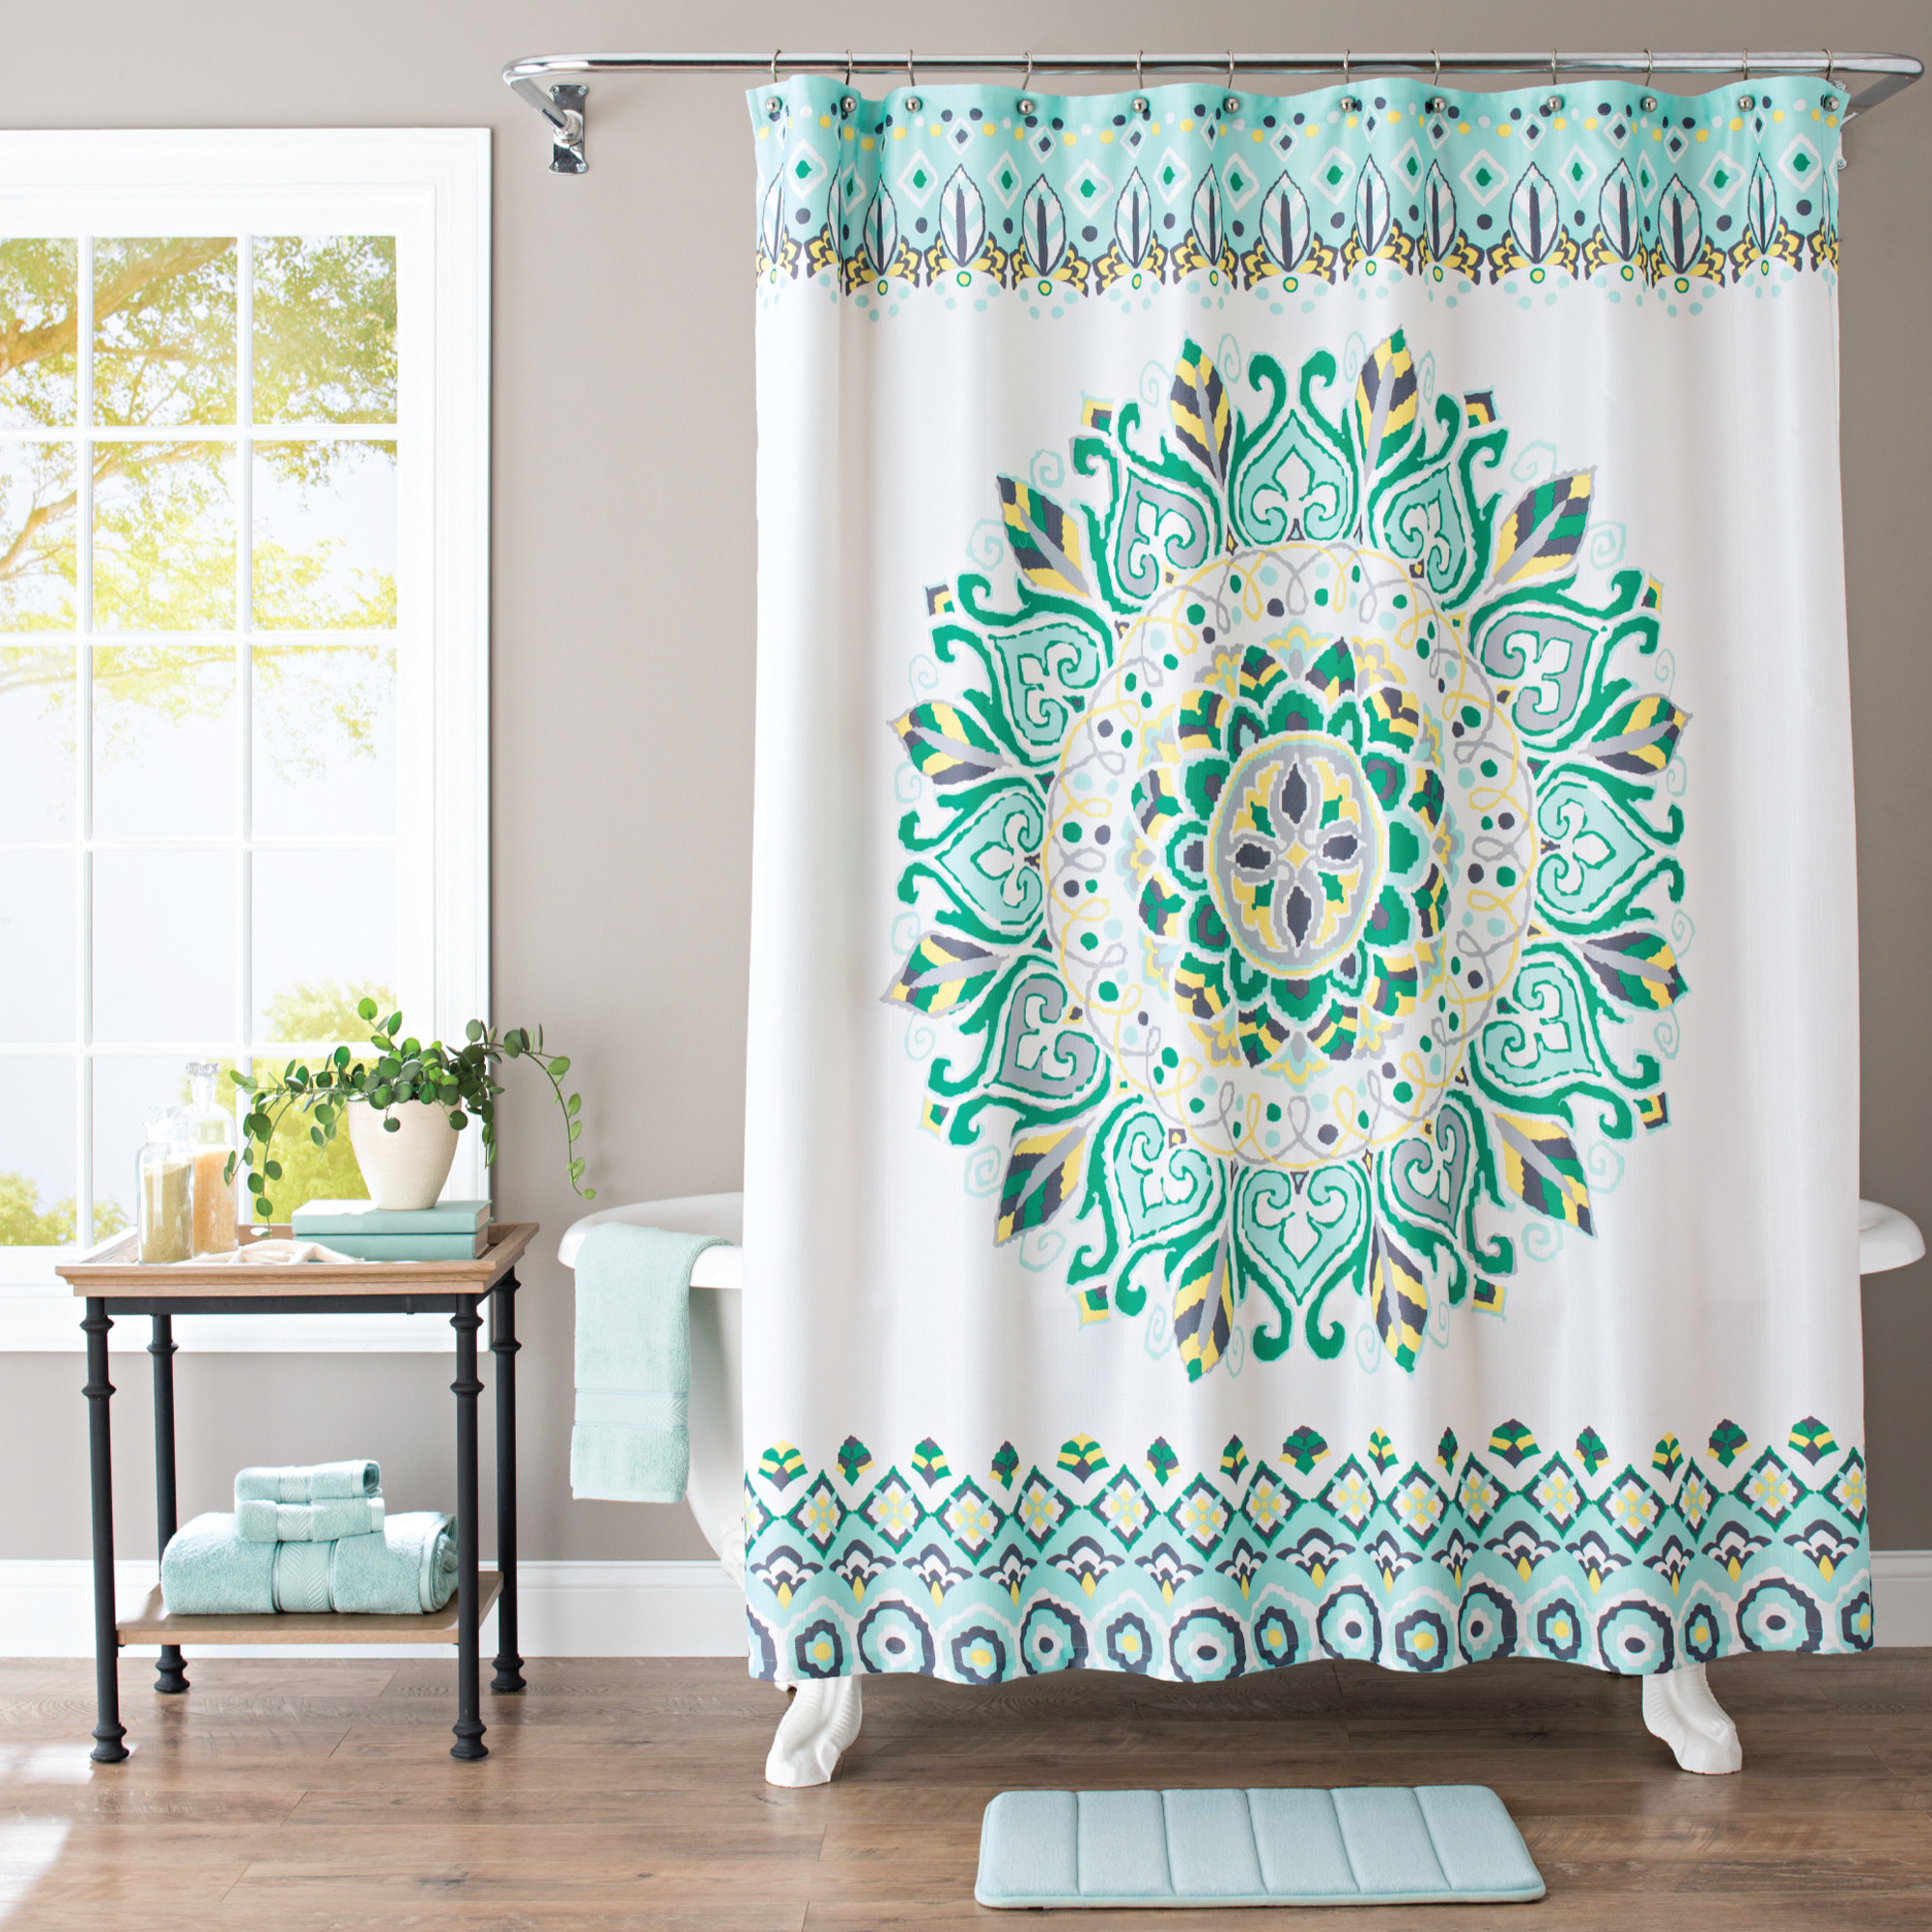 A white shower curtain with green, yellow, and gray medallion print